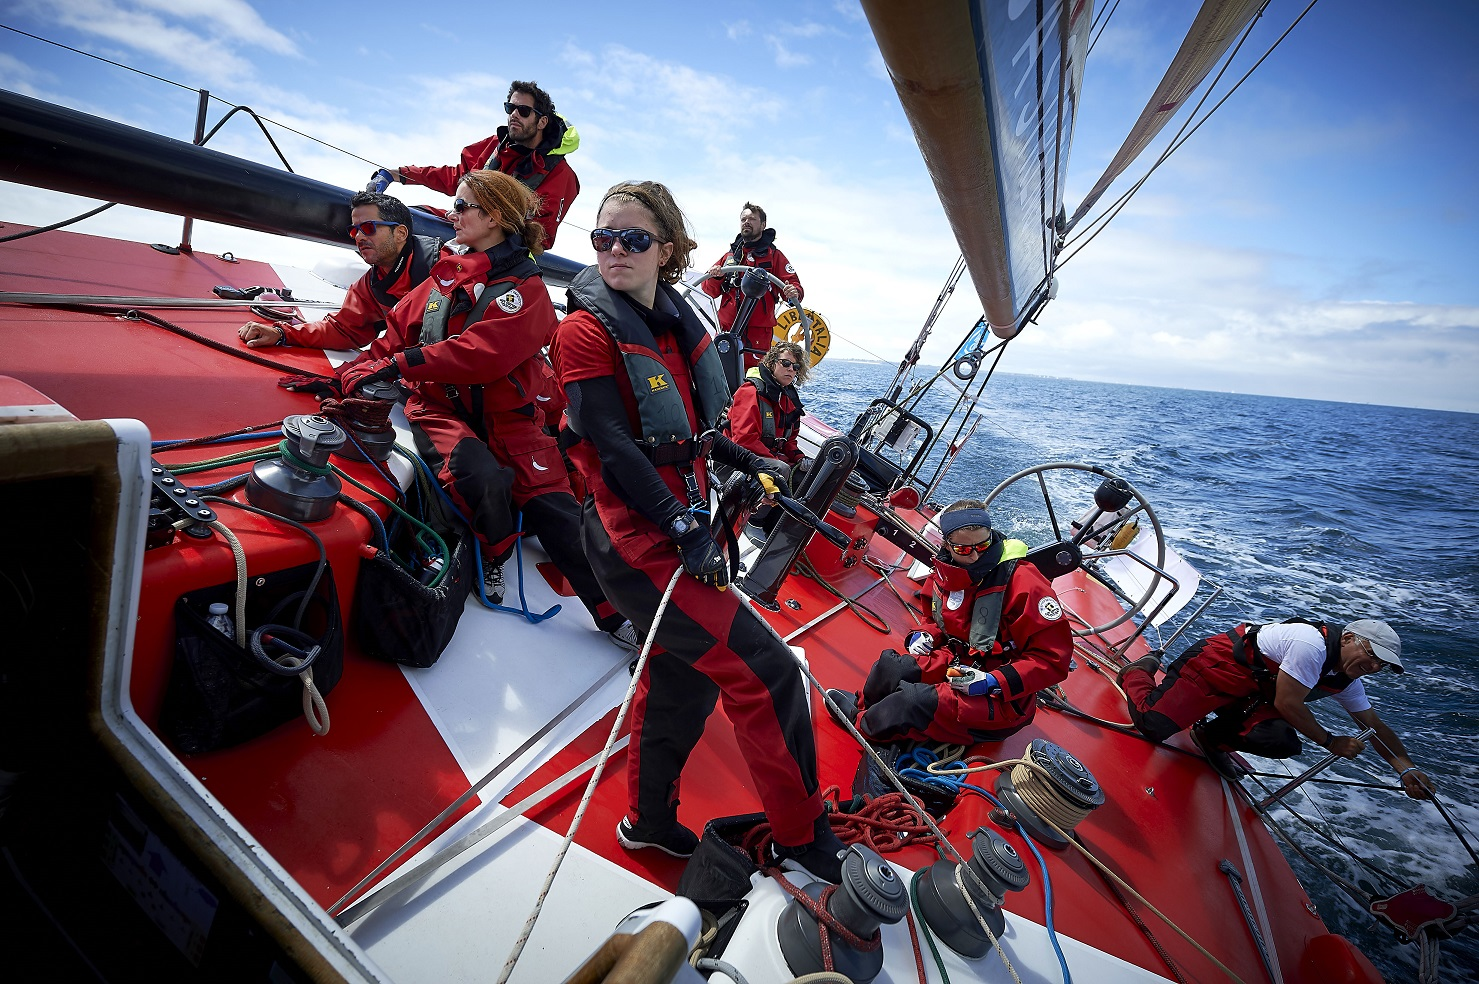 The diverse team on board the French VO60 Team Jolokia promoting the message 'Difference is a Strength' through their Rolex Fastnet Race campaign © Ministères sociaux DICOM Arnaud Pilpré Sipa